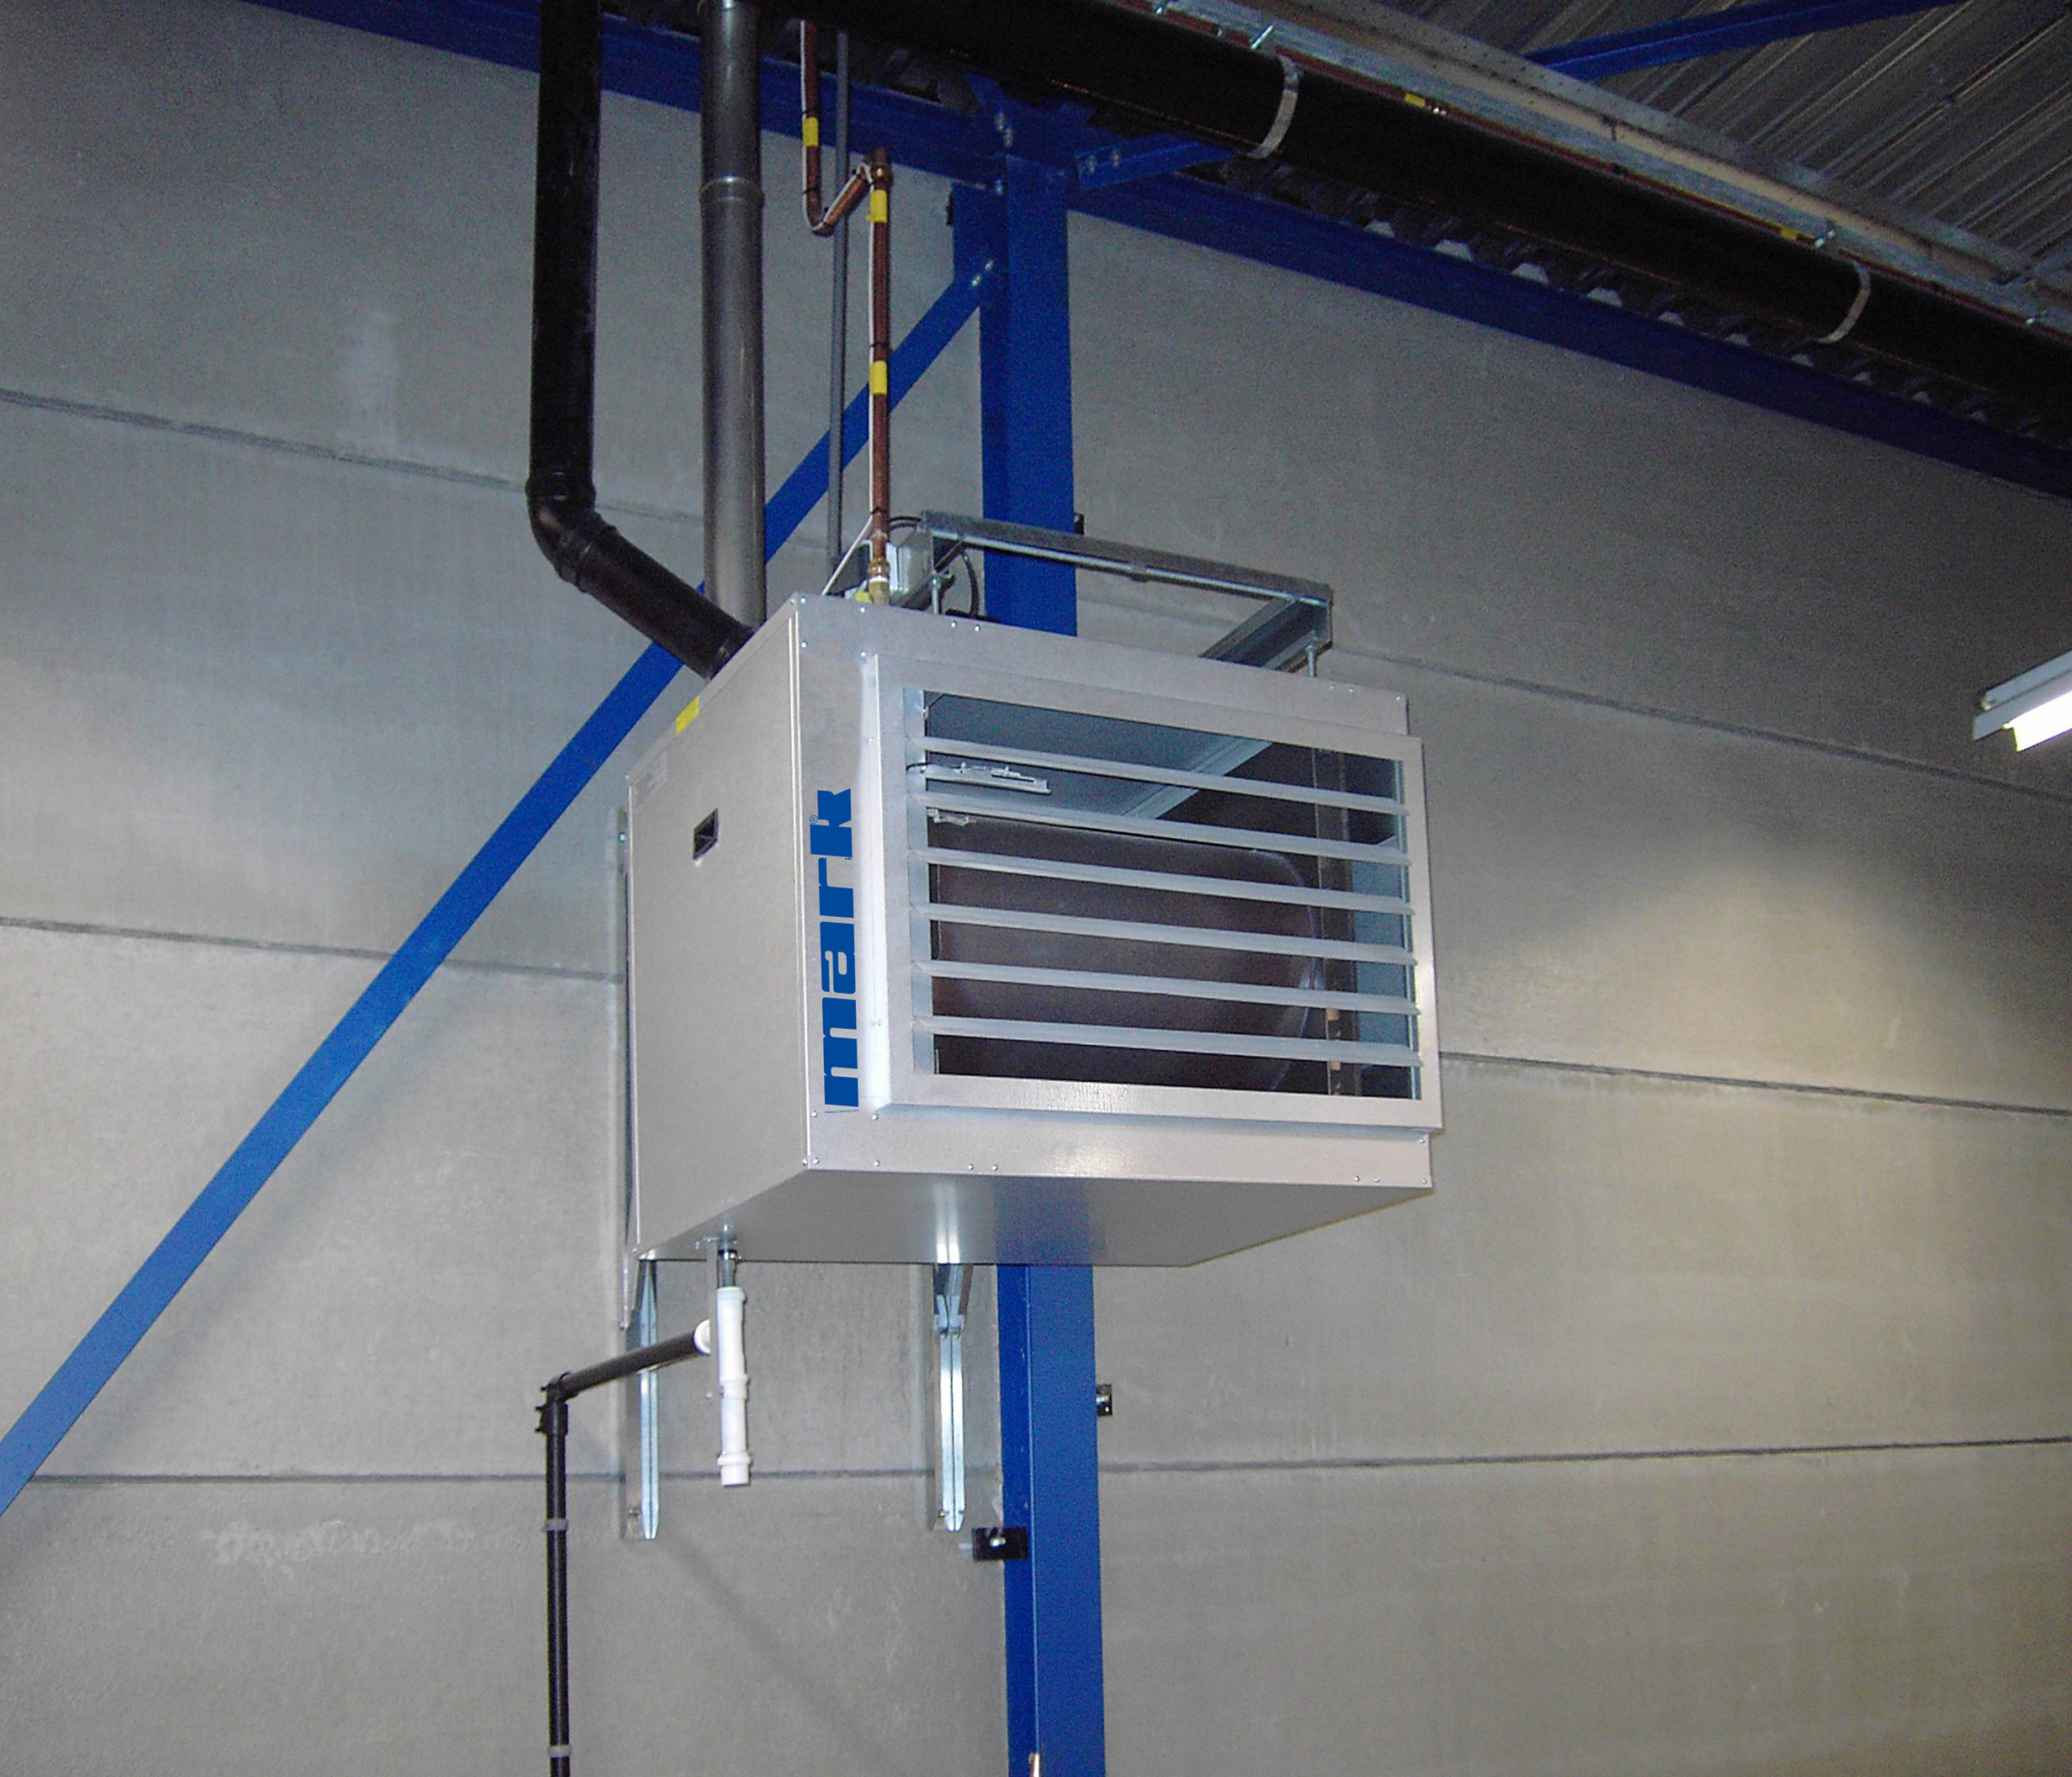 fargo reznor heater garage installation nd mn gas natural elk cost manual river lakeville